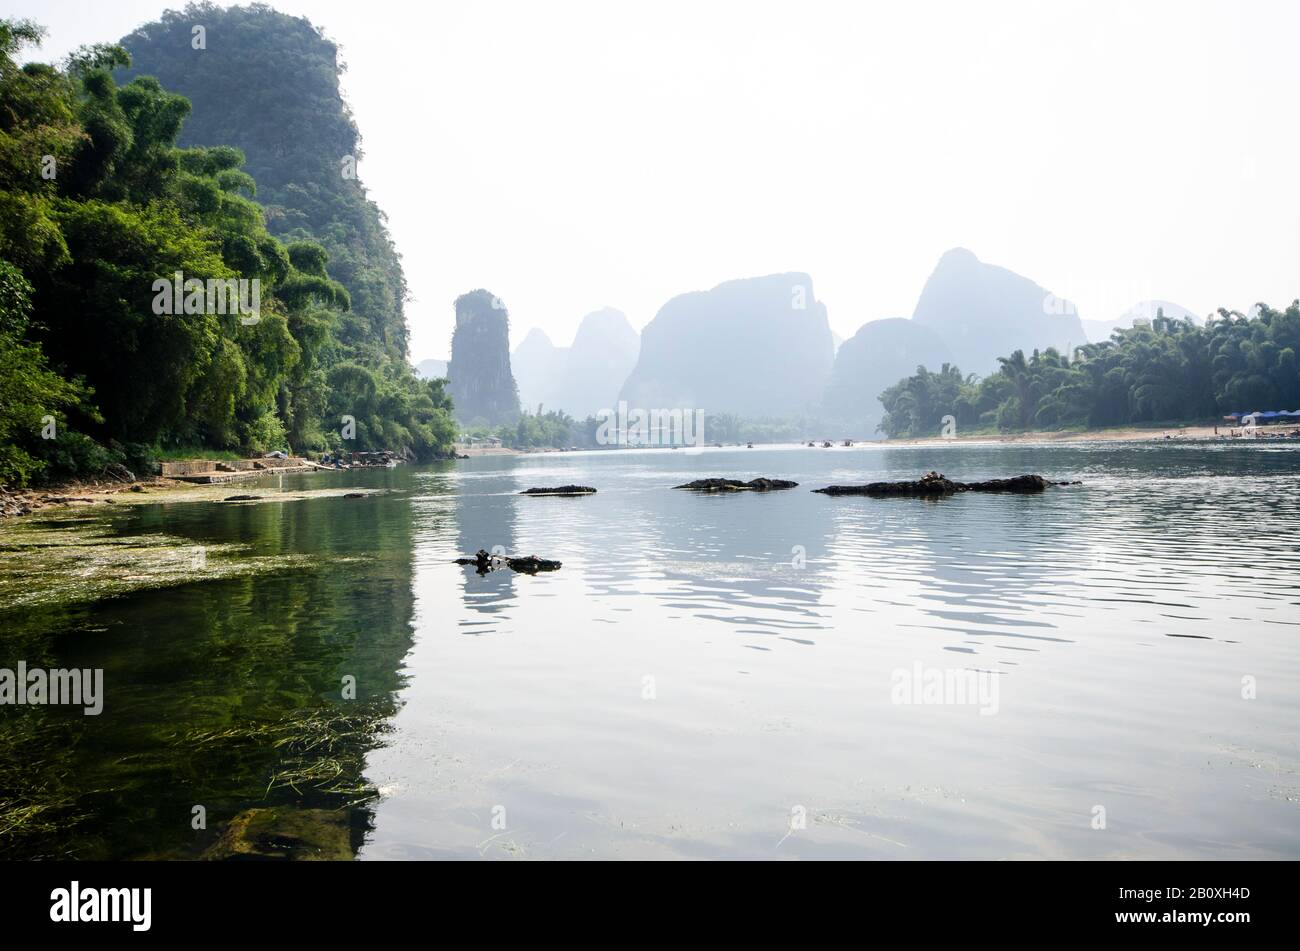 A view along the banks of the Li River, Yangshuo, Guilin, China. With bamboo forests on either side and distant mountains fading into the mist. Stock Photo